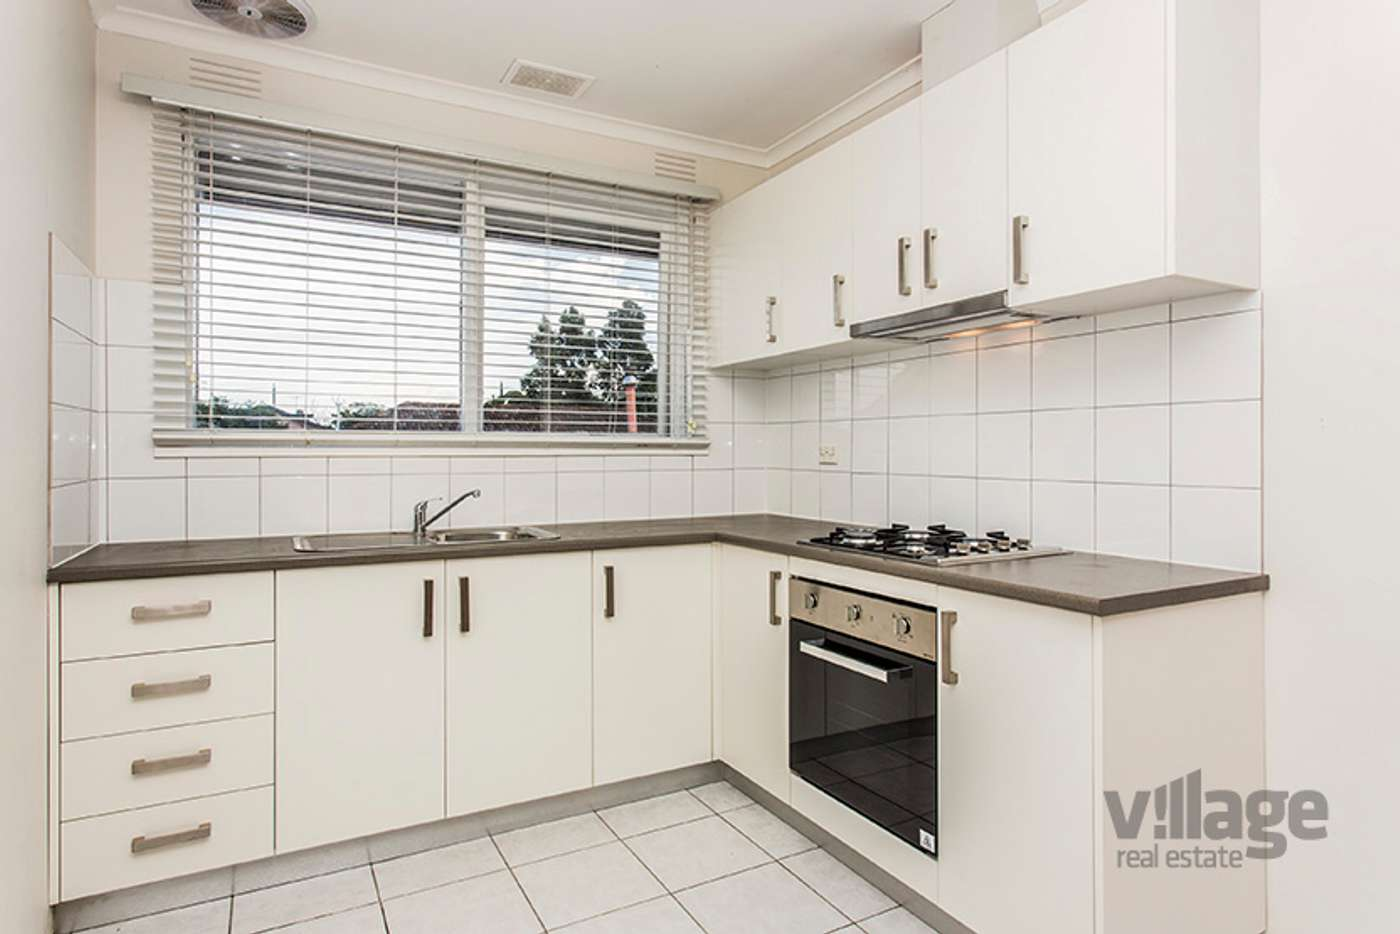 Main view of Homely apartment listing, 12/12 Carmichael Street, West Footscray VIC 3012